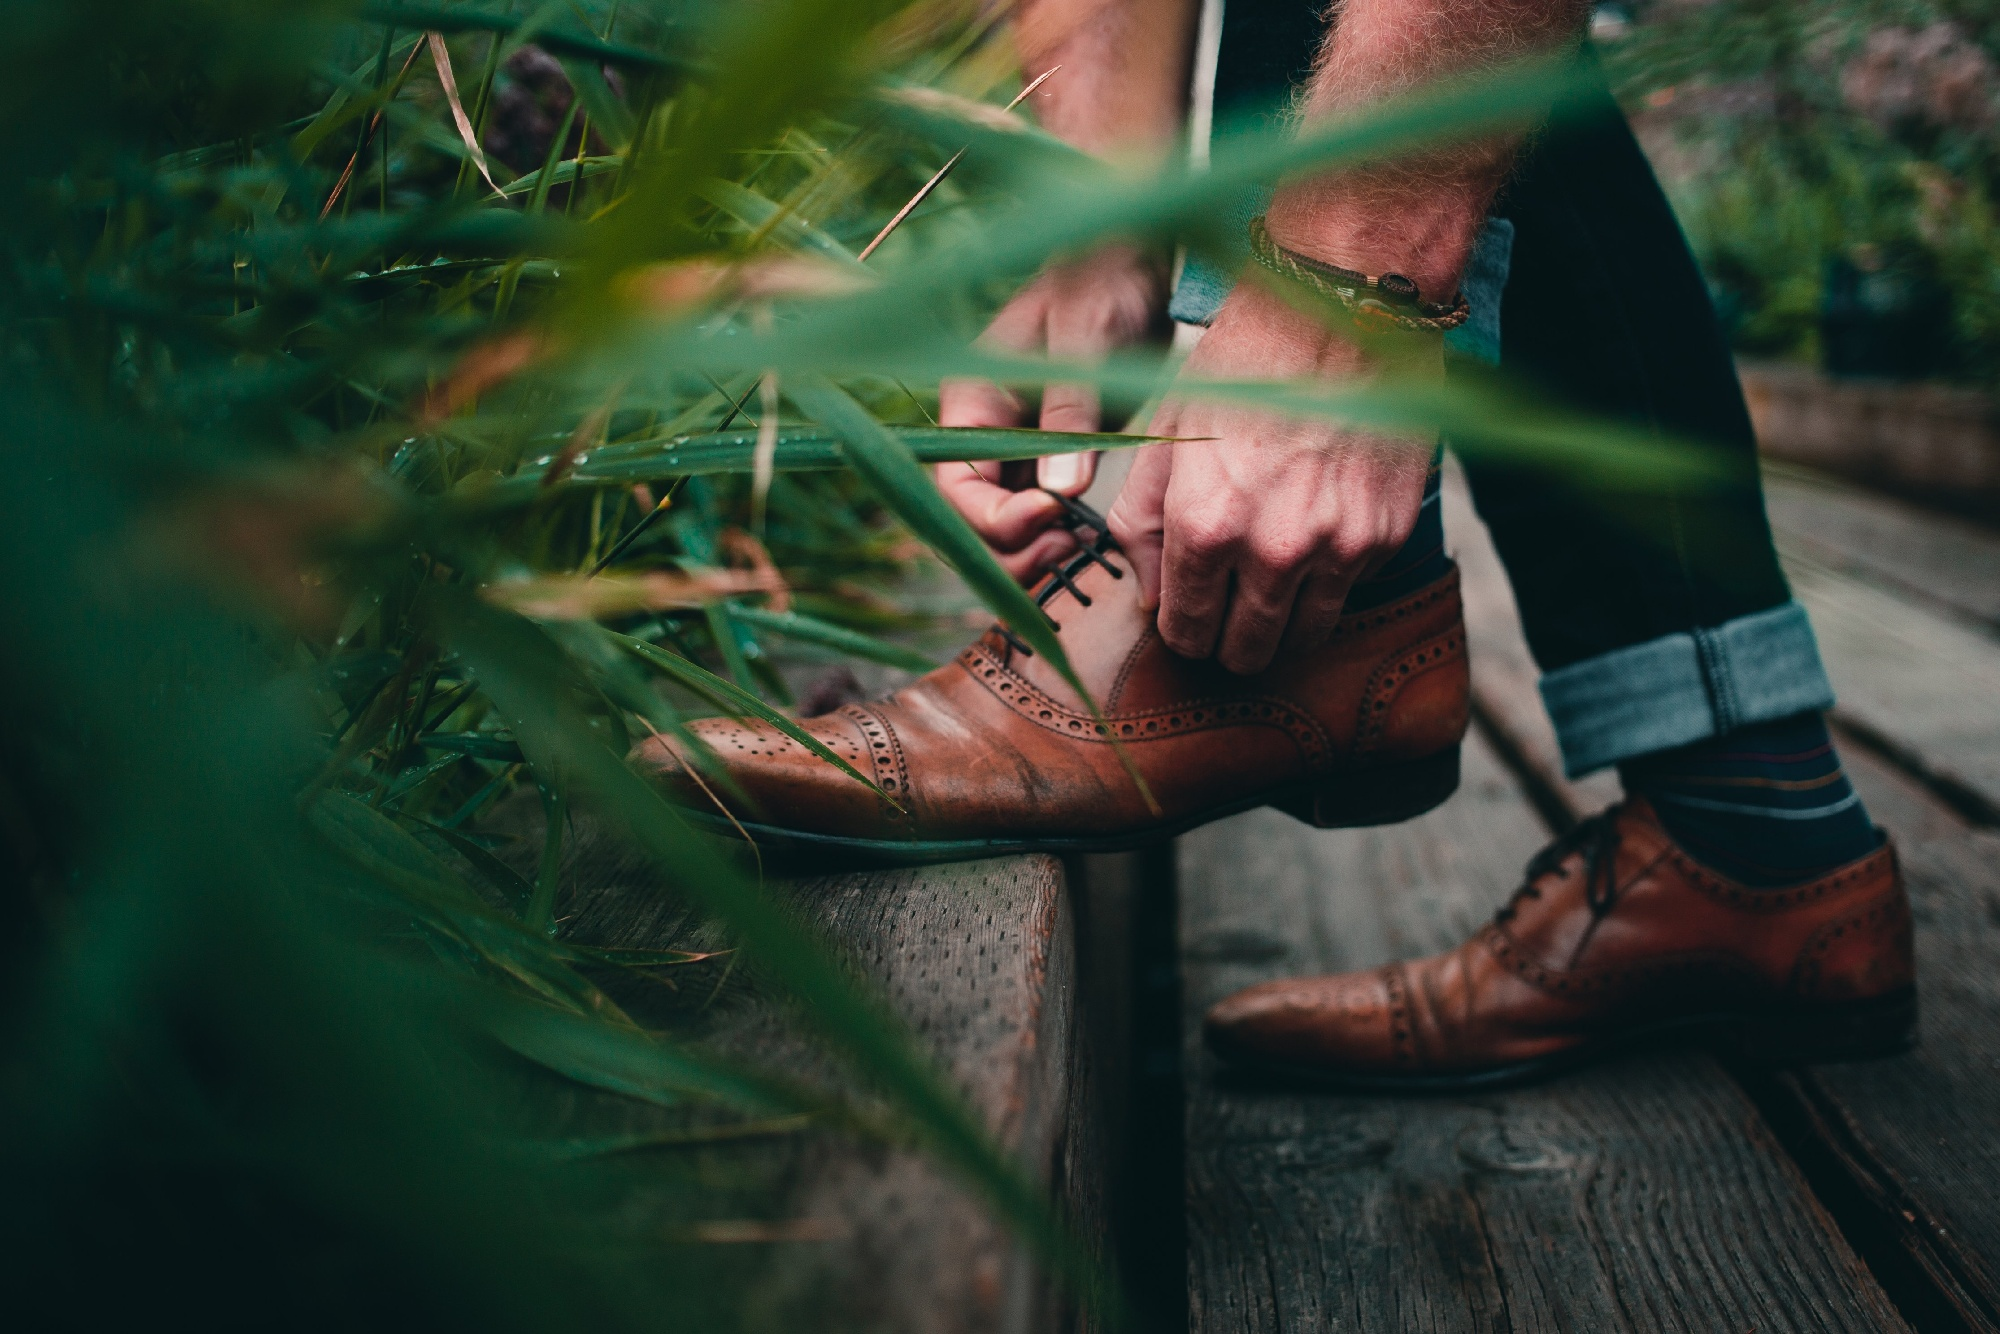 MakersValley Blog | The Why & How of Sustainable Footwear: A Look at Allbirds, Rothy's, & More